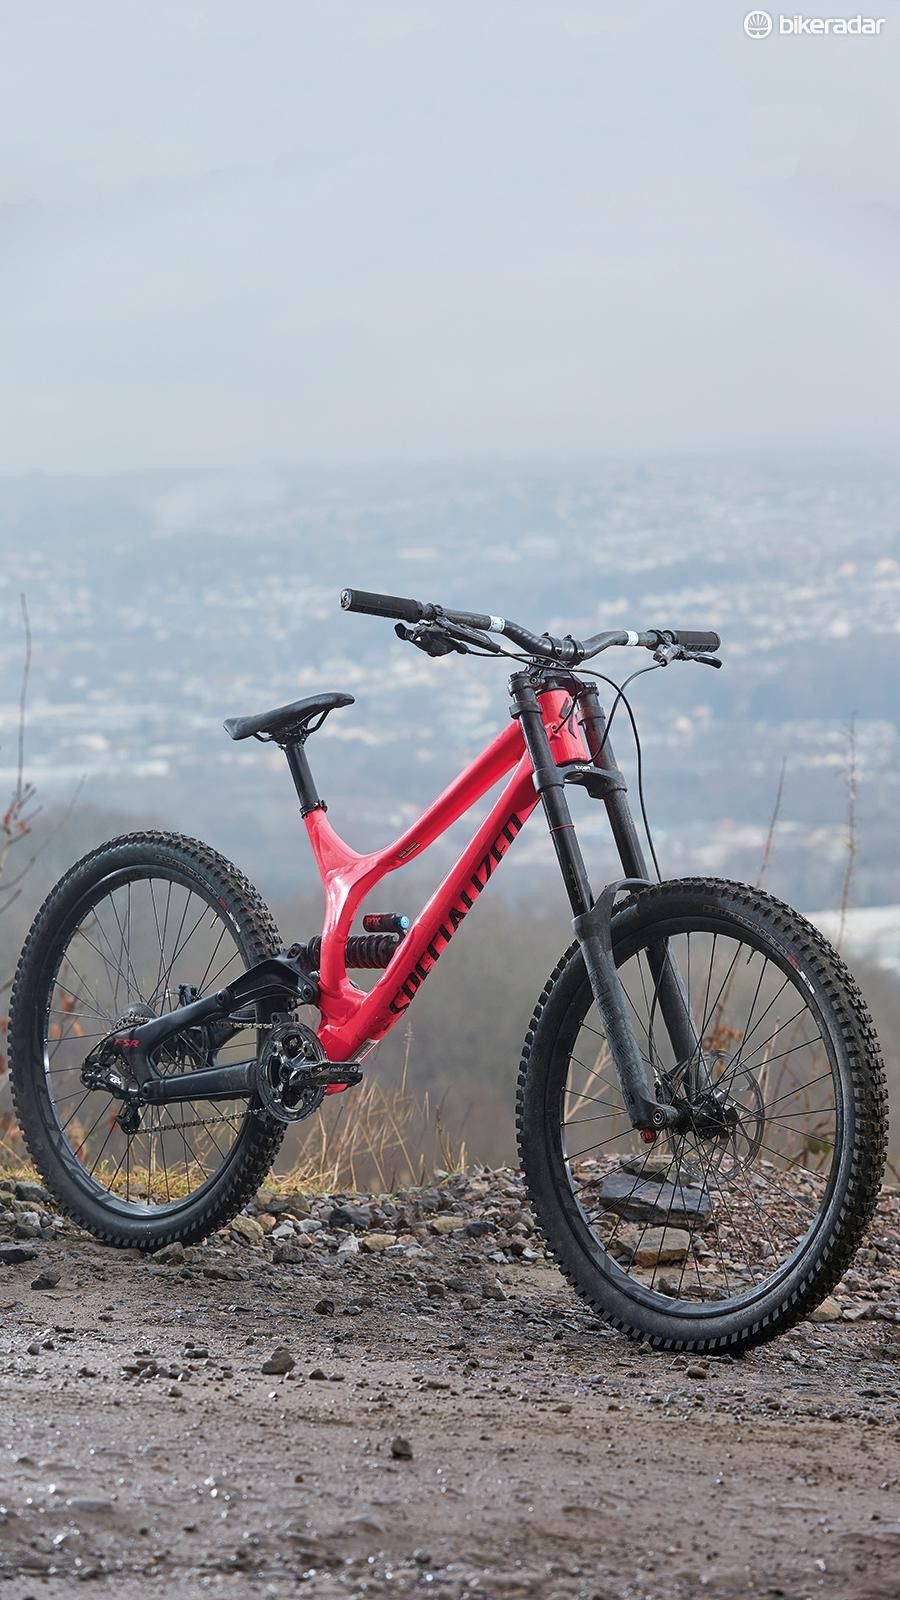 48b62049631 The Demo has a low BB which makes it predictable and engaging to ride, but